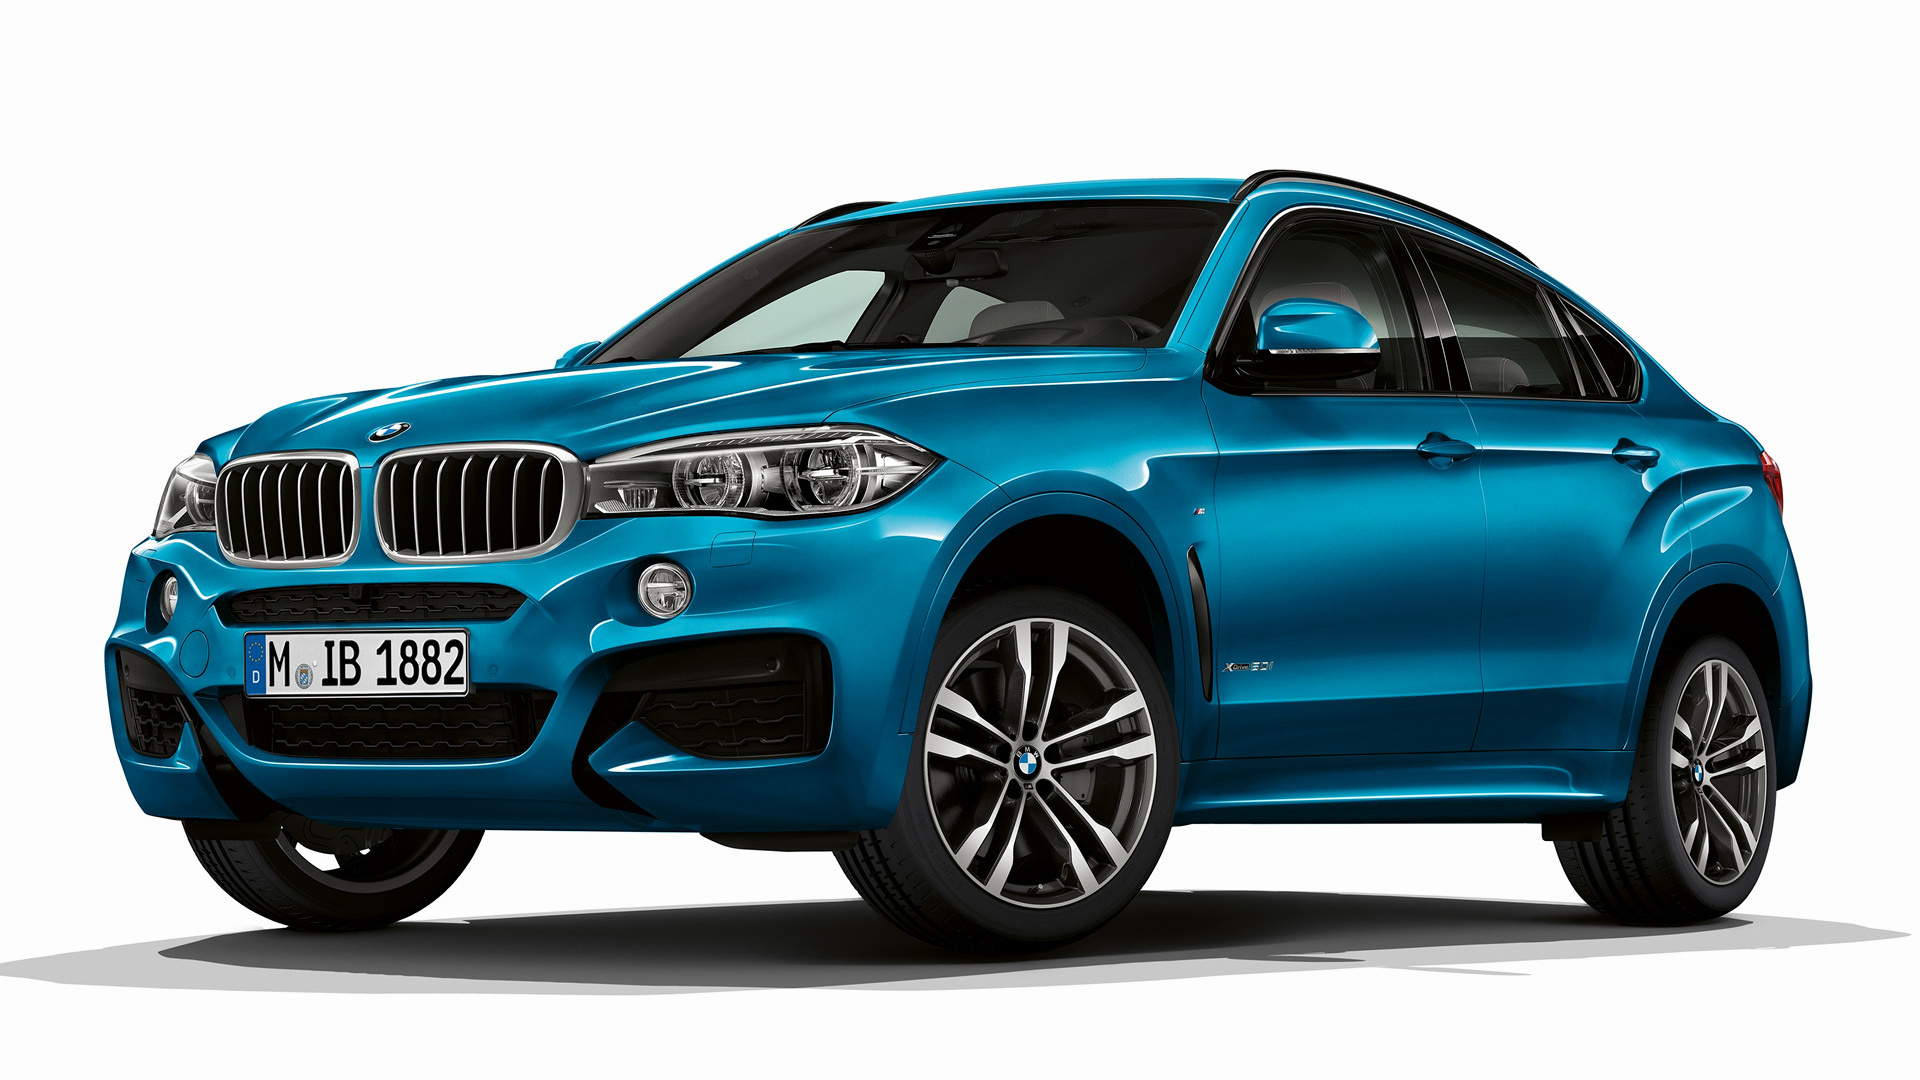 bmw x6 m sport edition 2017 wallpapers and hd images car pixel. Black Bedroom Furniture Sets. Home Design Ideas